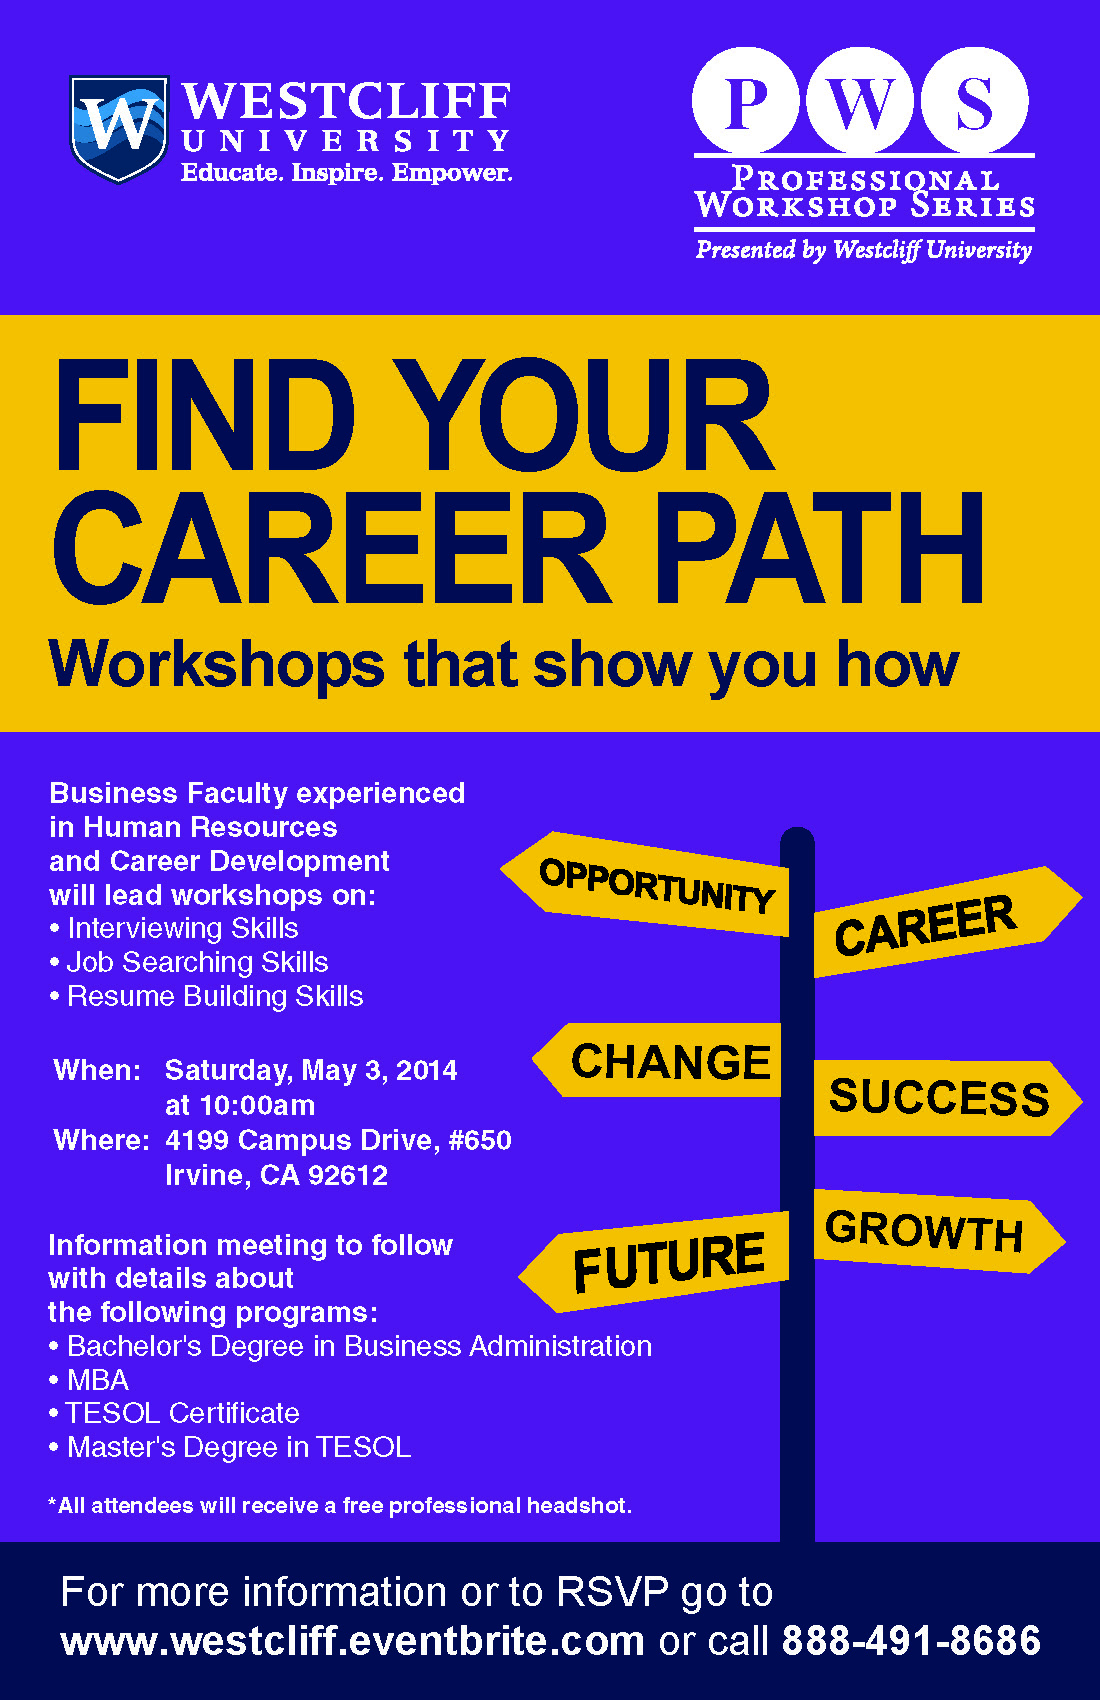 New at Westcliff - Find your Career Path